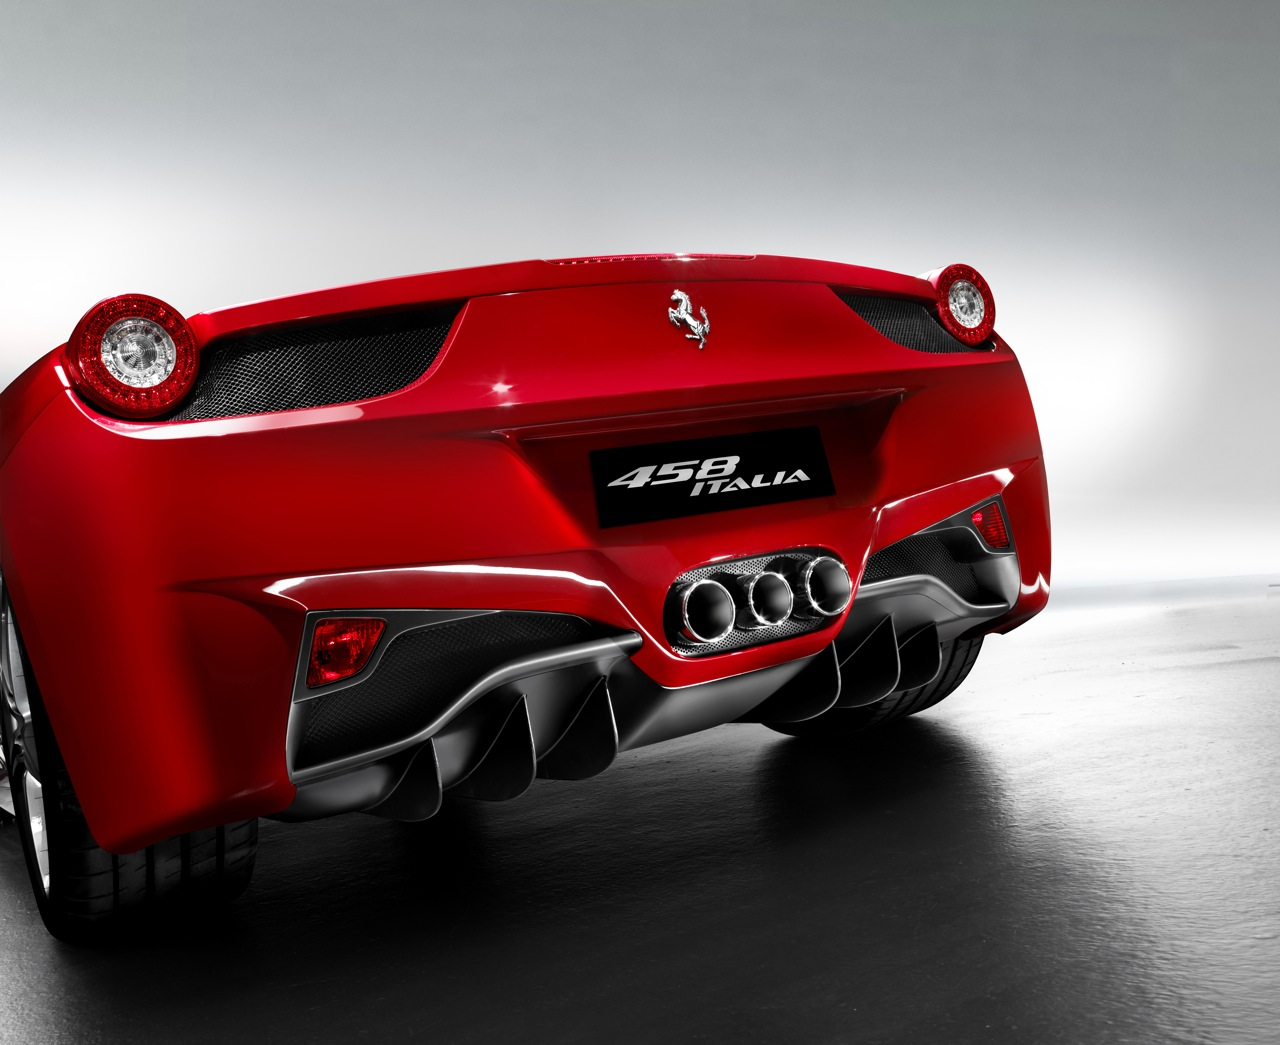 Ferrari 458 Italia car wallpaper